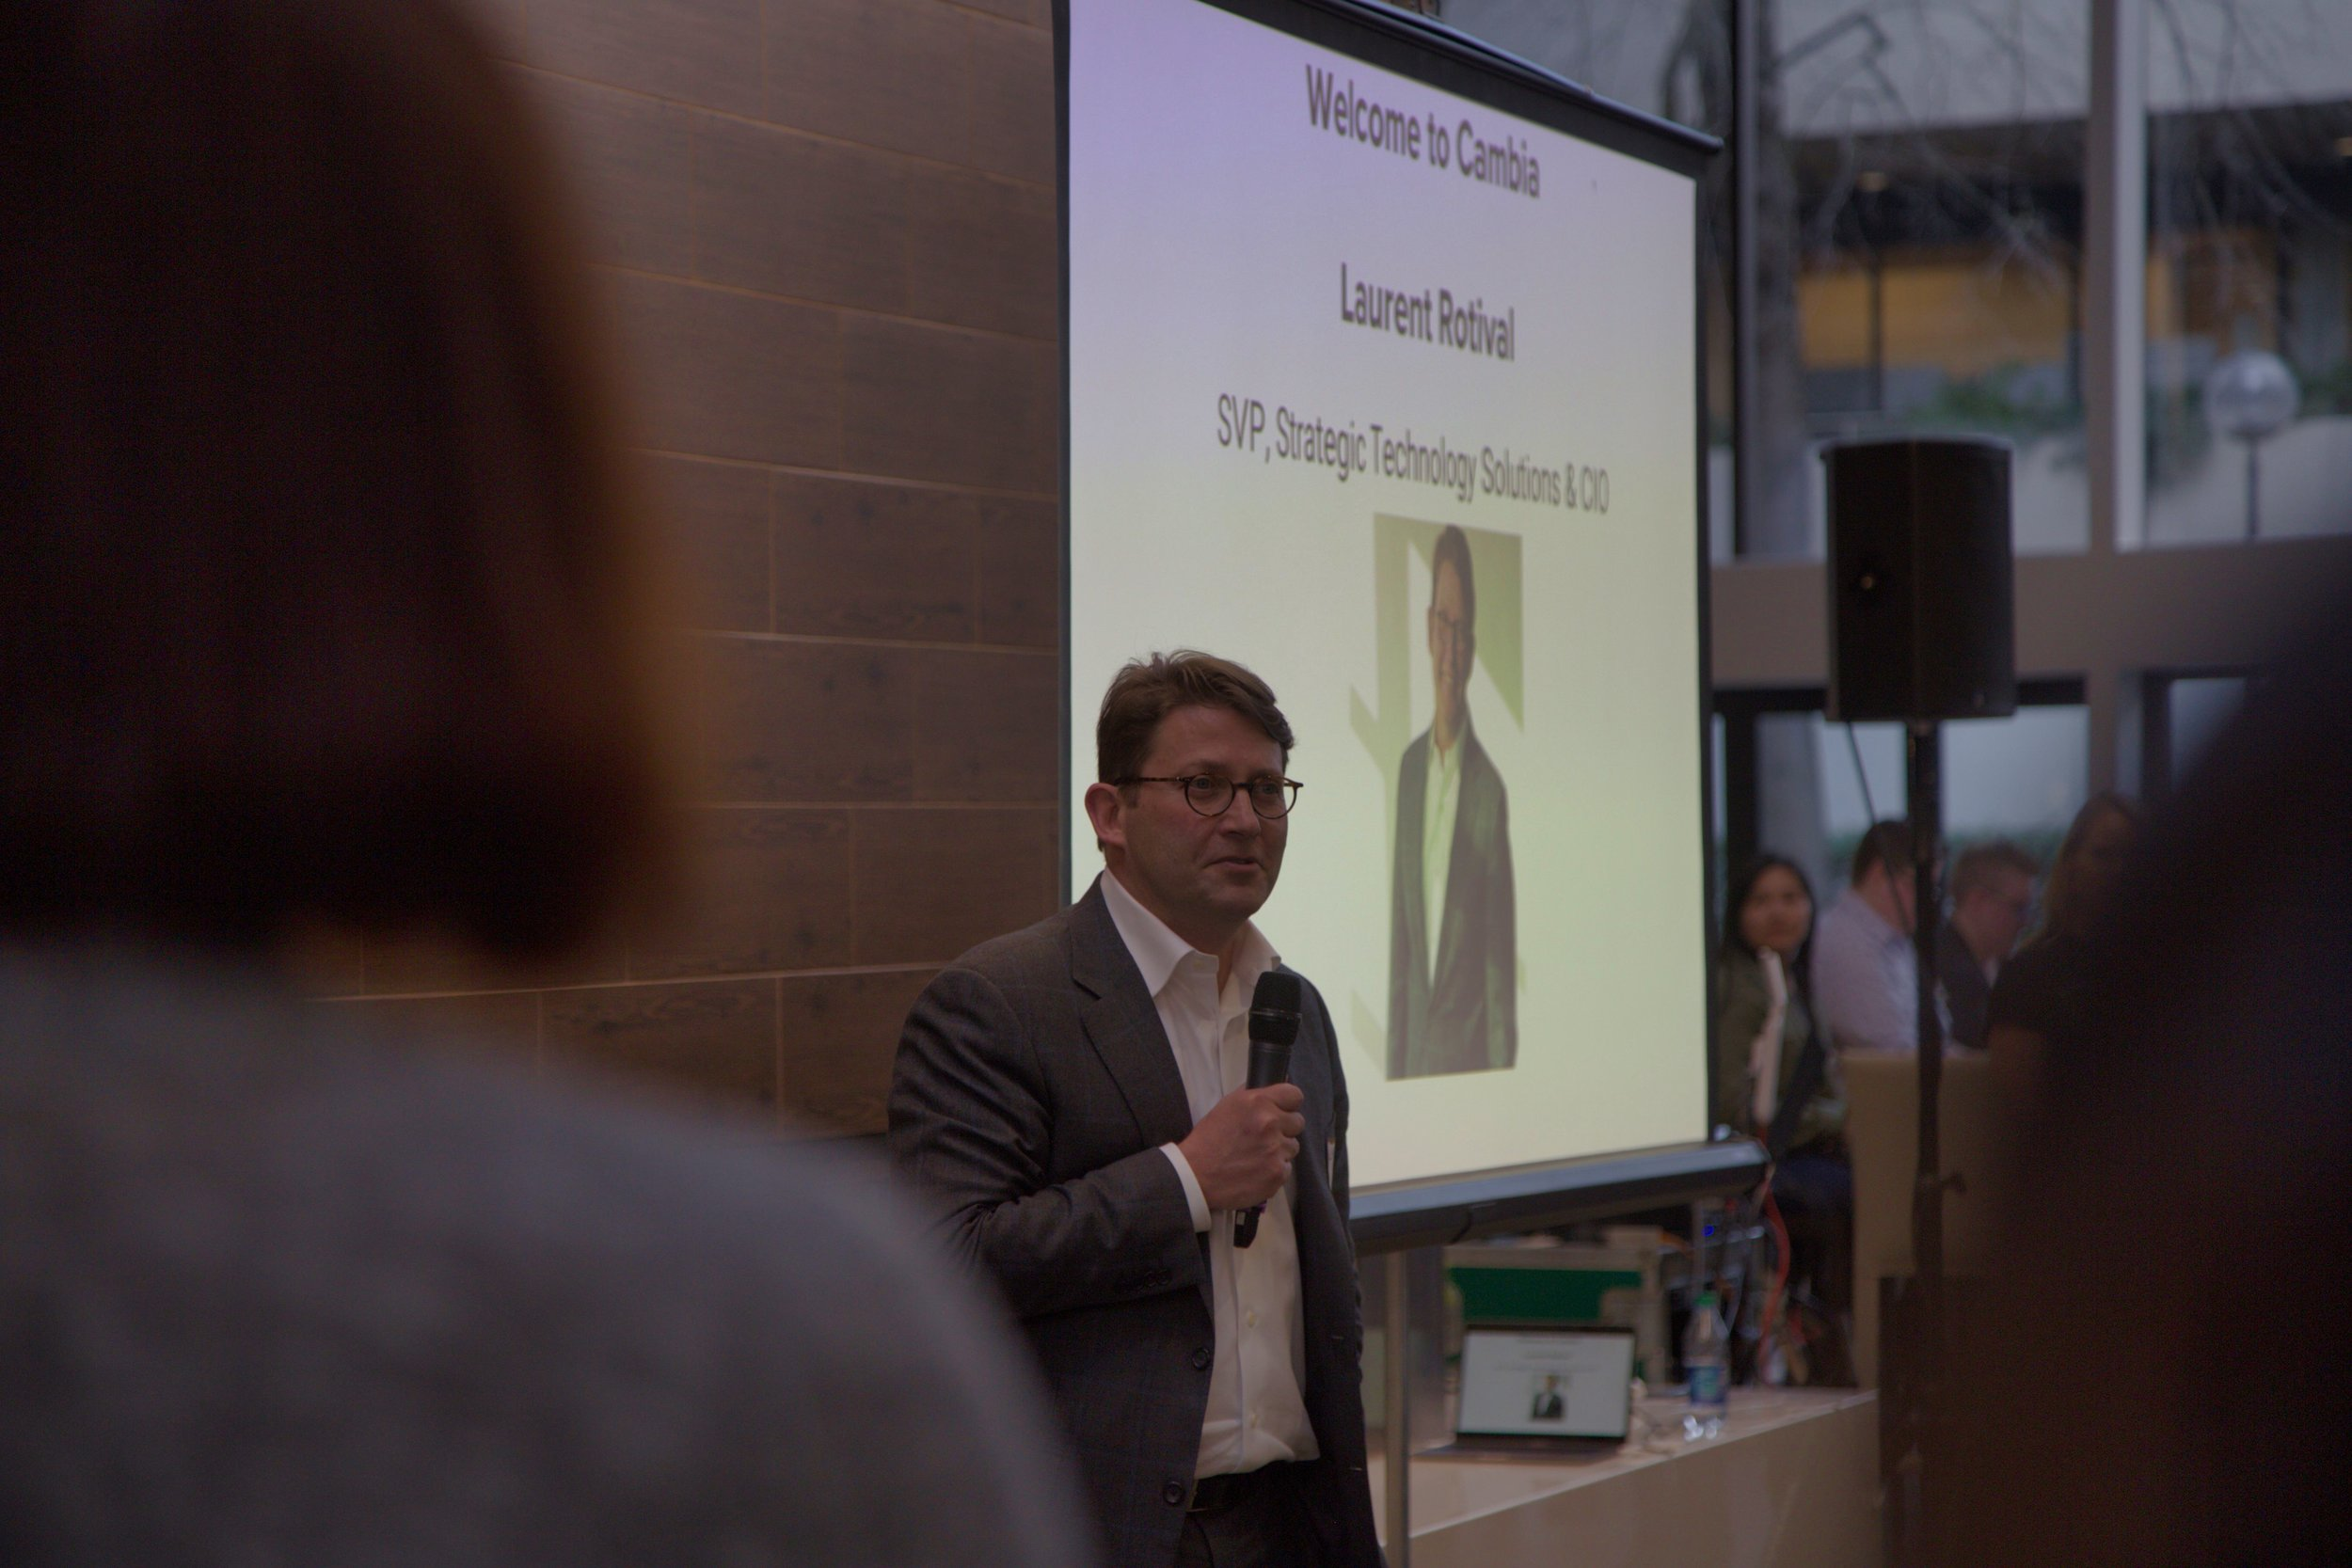 PDXWIT March Happy Hour @ Cambia Health, 3/19/19, Laurent Rotival - SVP, Strategic Technology Solutions & CIO at Cambia Health Solutions - speaks